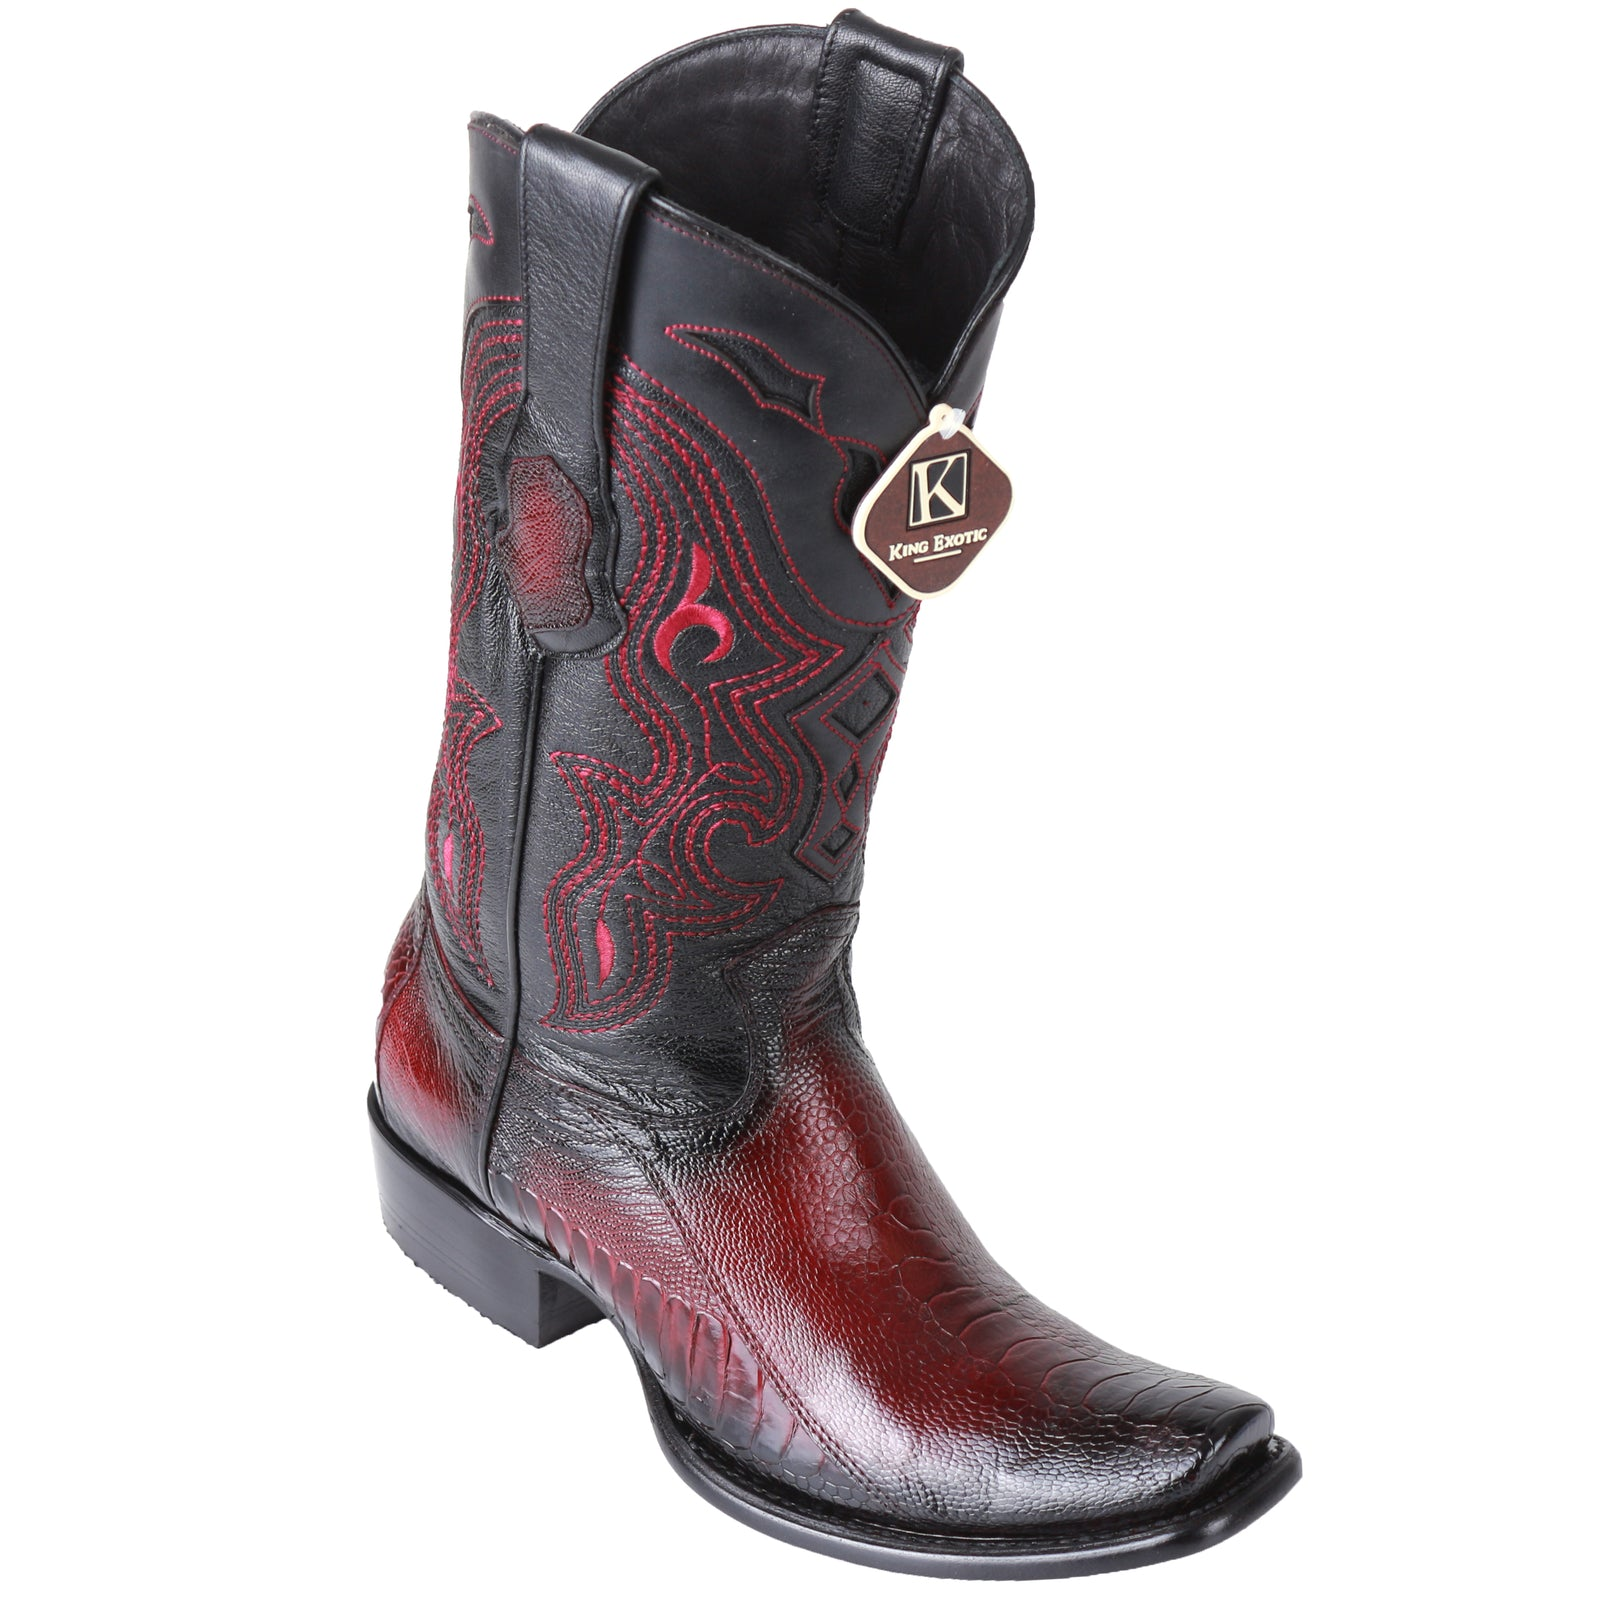 King Exotic Men's Ostrich Leg Faded Burgundy Cowboy Boots - H79 Dubai Toe